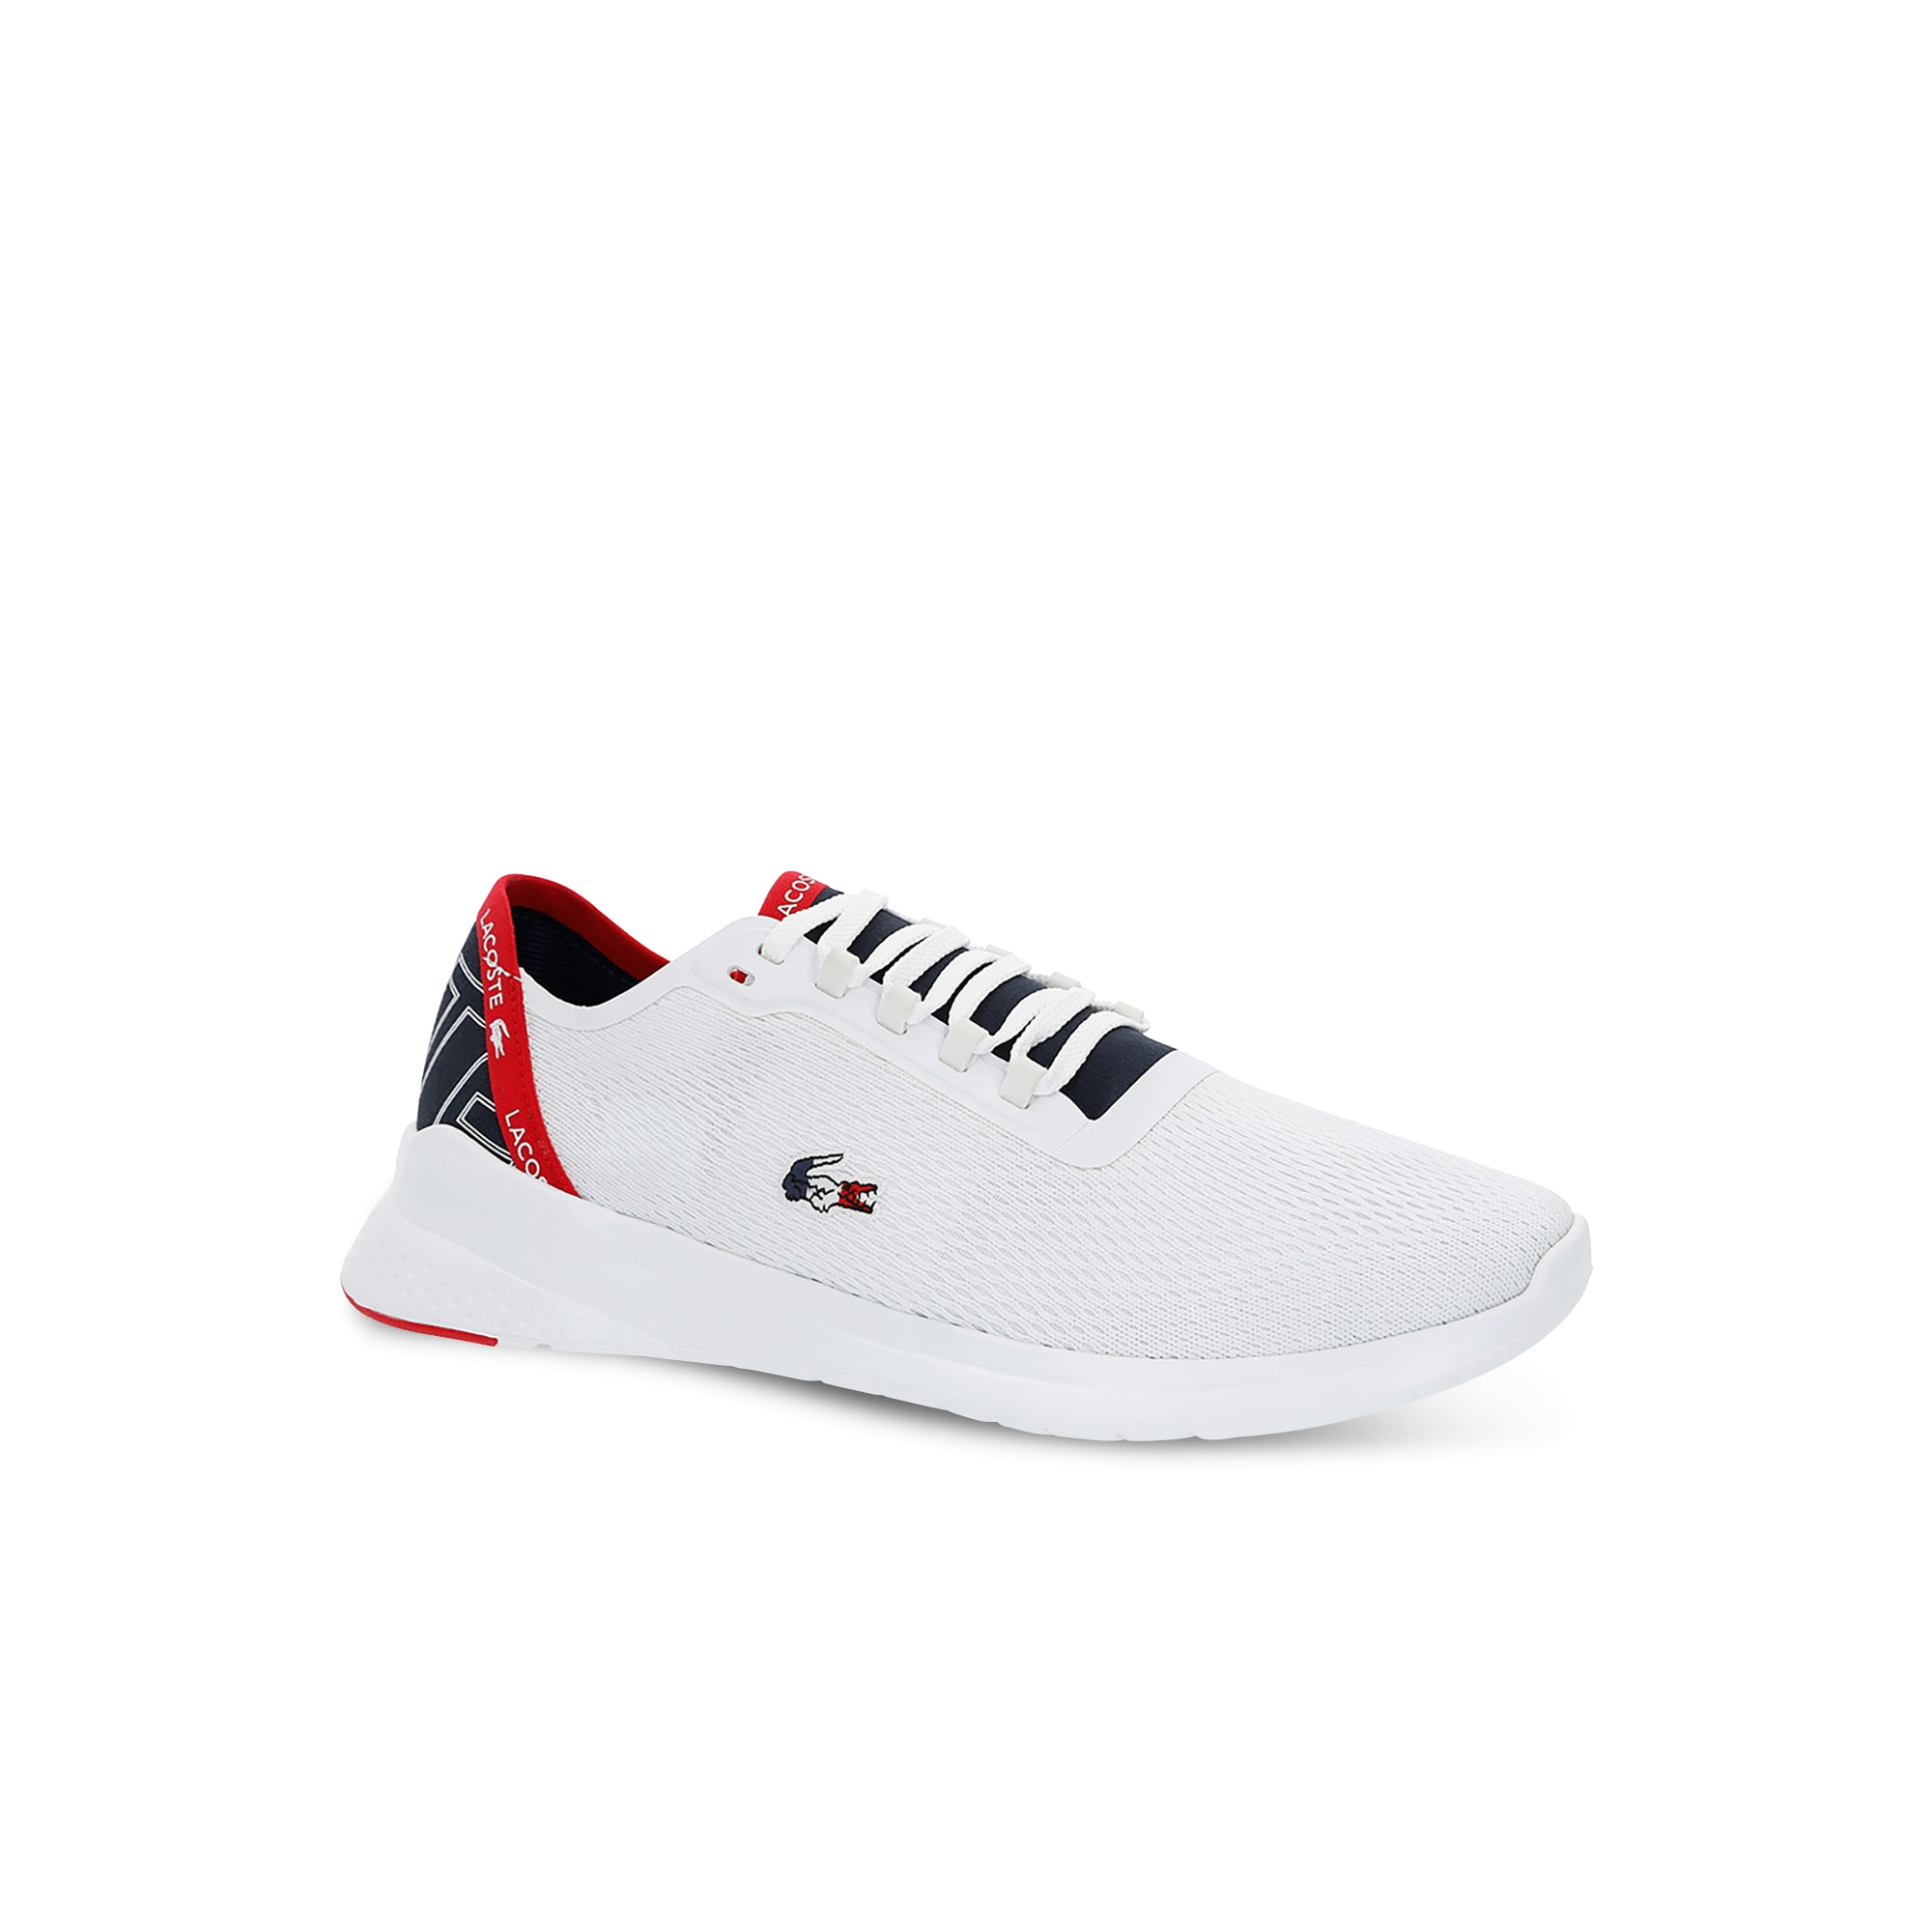 6c214057e0f7 Men s LT Fit Sneakers with Tricolor Croc